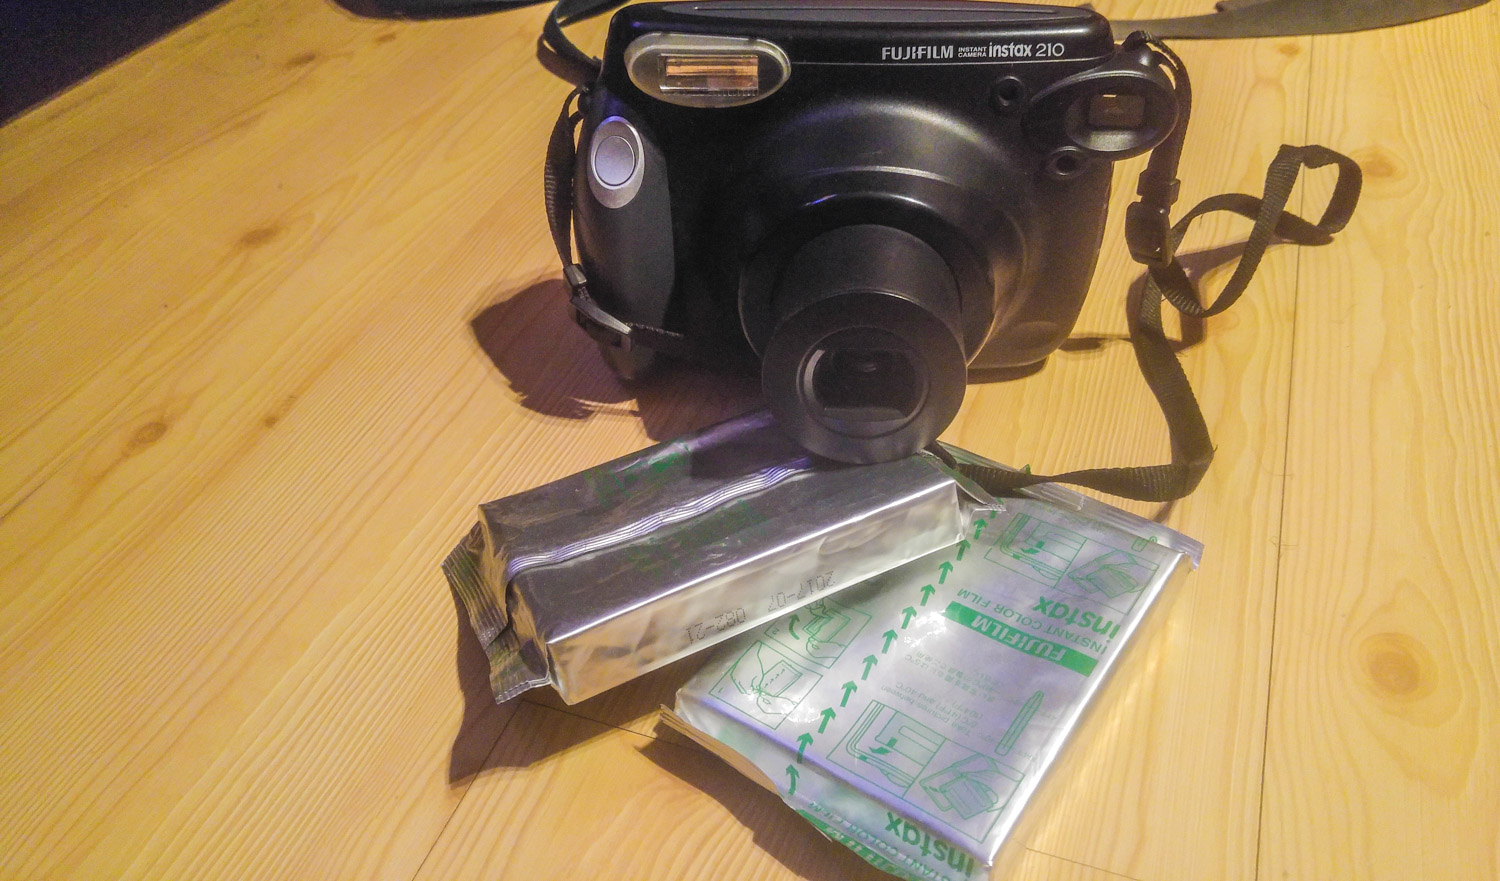 My Polaroid camera with 2 packs of film.